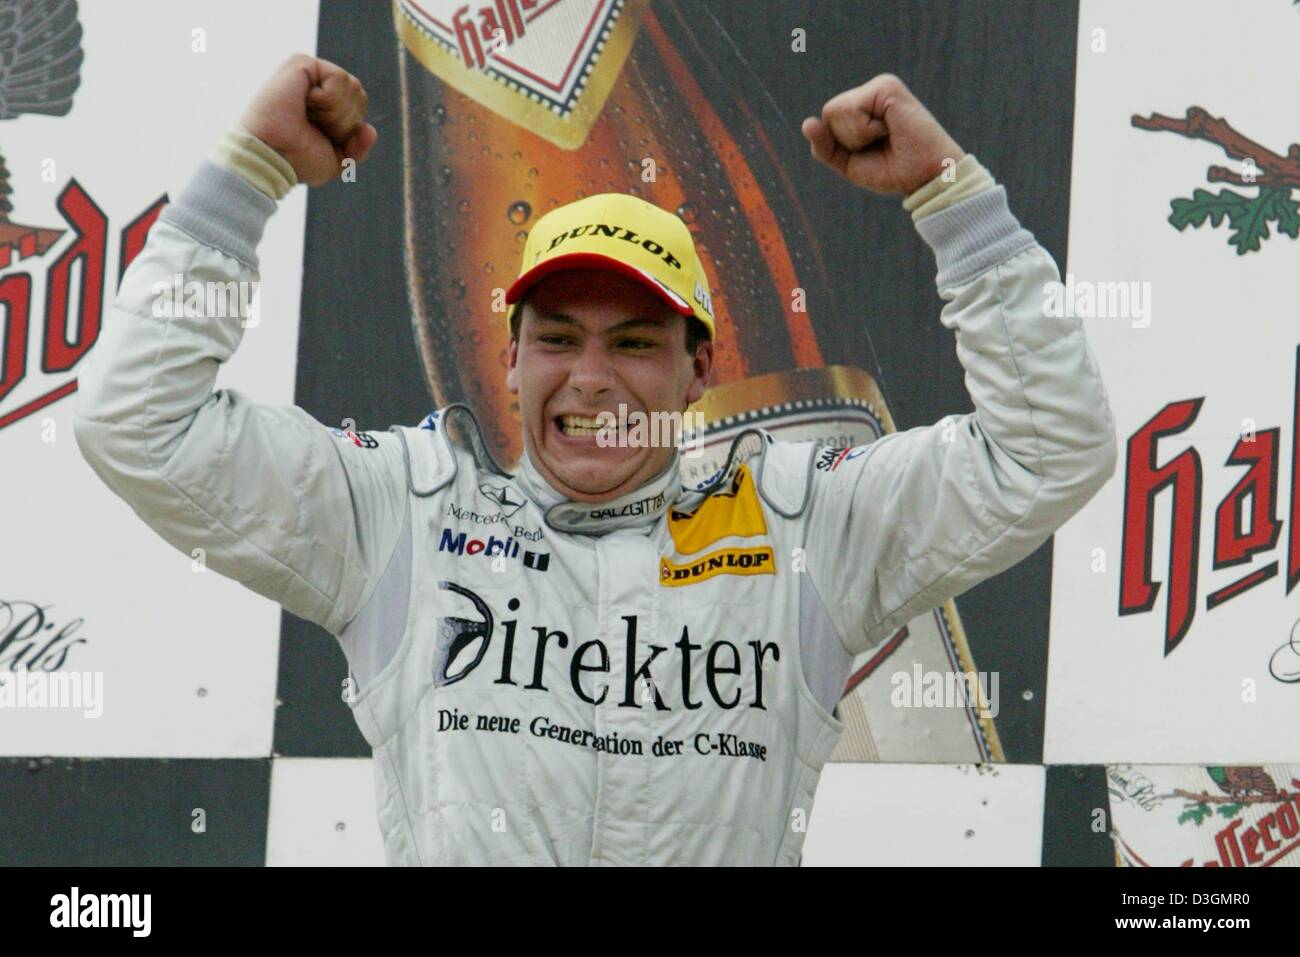 (dpa) - British DTM Mercedes pilot Gary Paffett cheers during the award ceremony in Nuremberg, Germany, 27 June Stock Photo